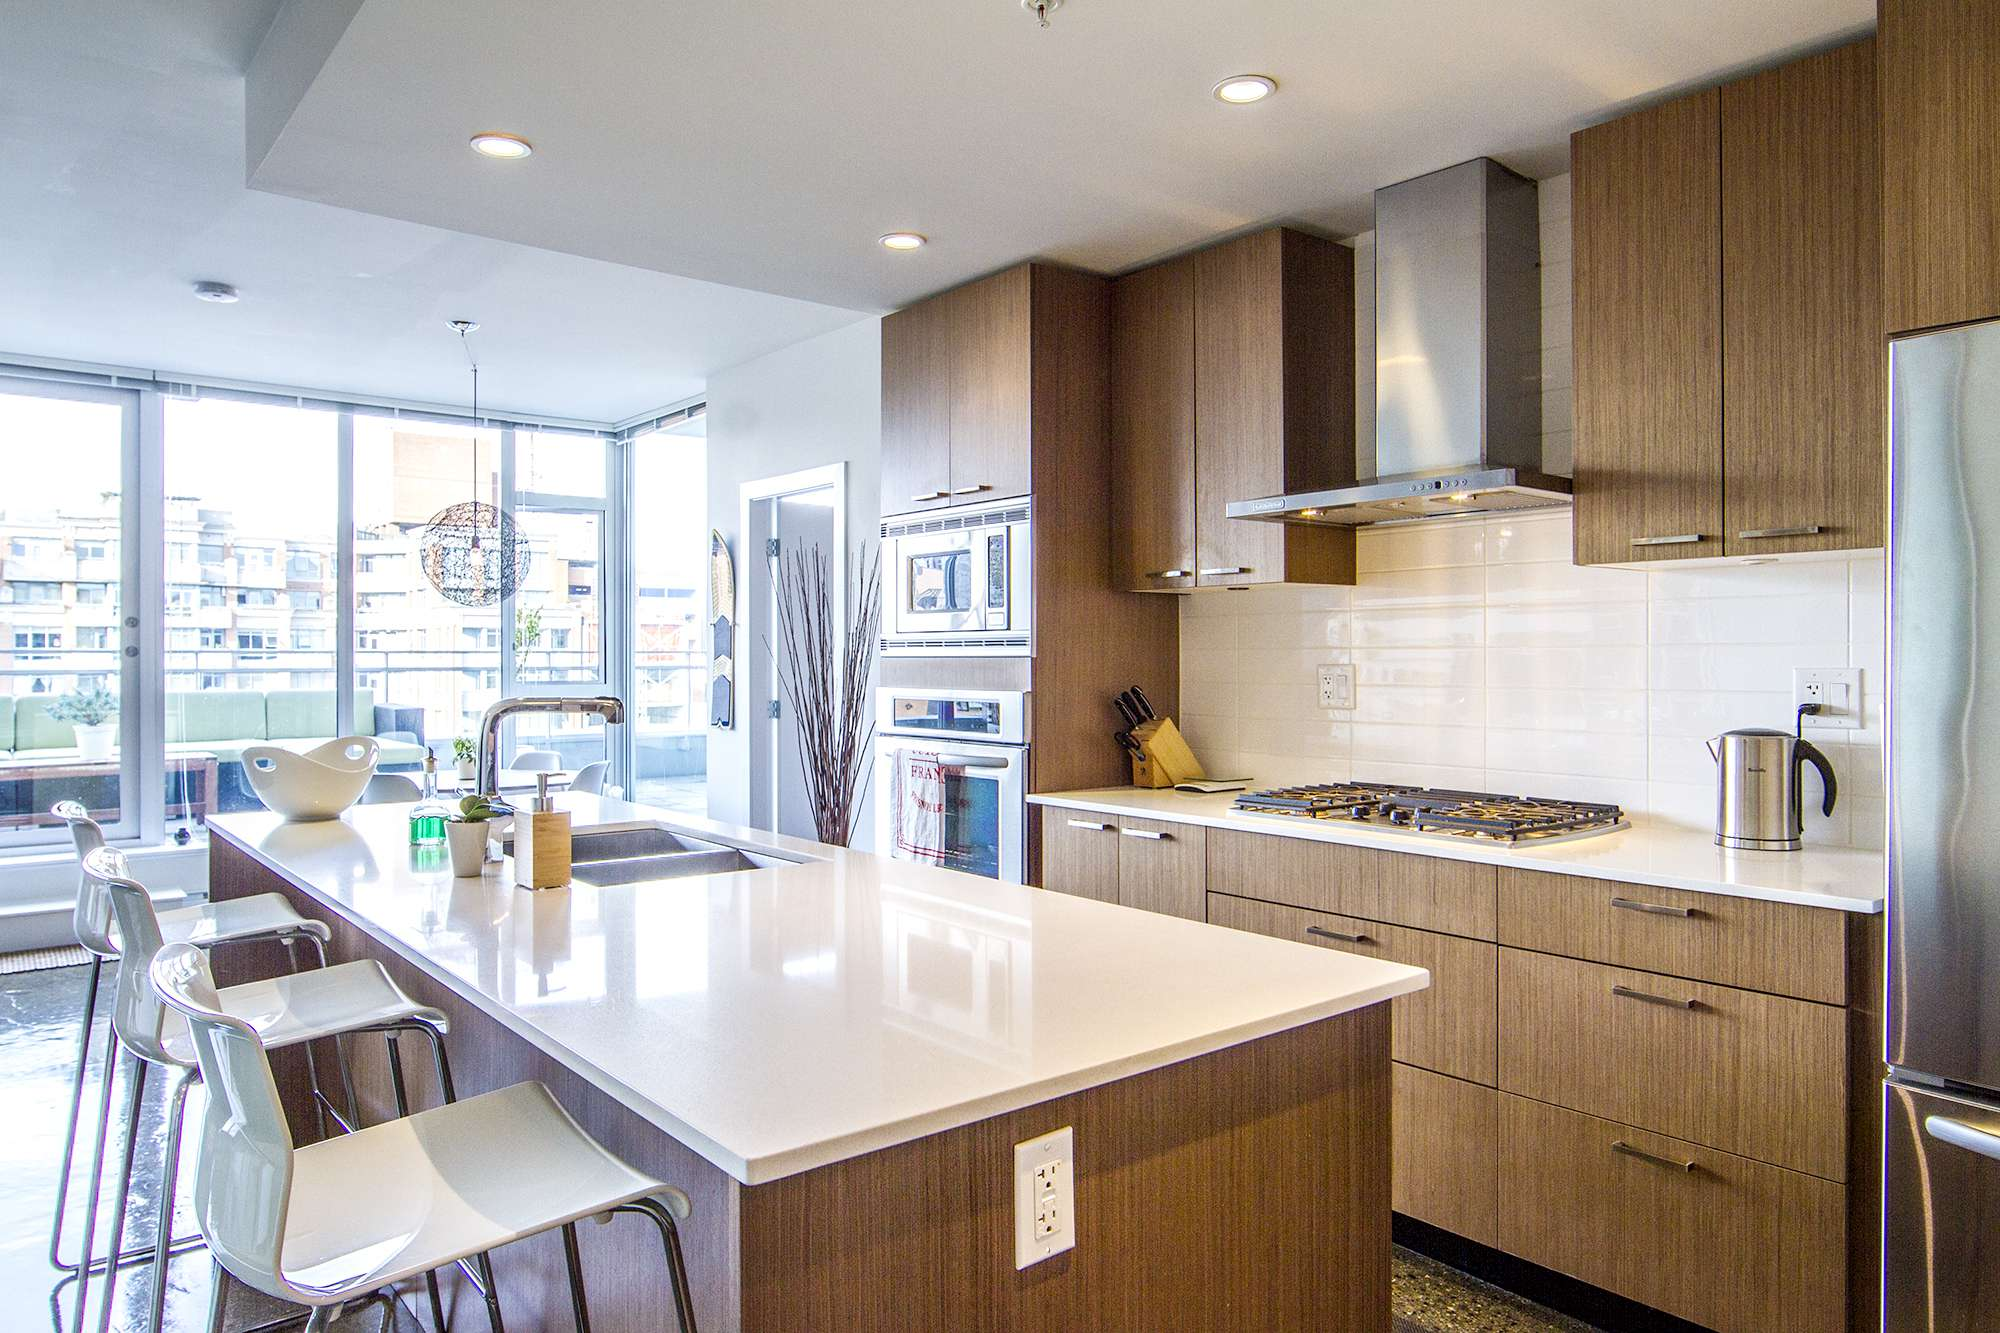 805 - 221 Union Street, Vancouver, British Columbia, Canada V6A 3A1, 2 Bedrooms Bedrooms, Register to View ,2 BathroomsBathrooms,For Sale,V6A,Union ,1425